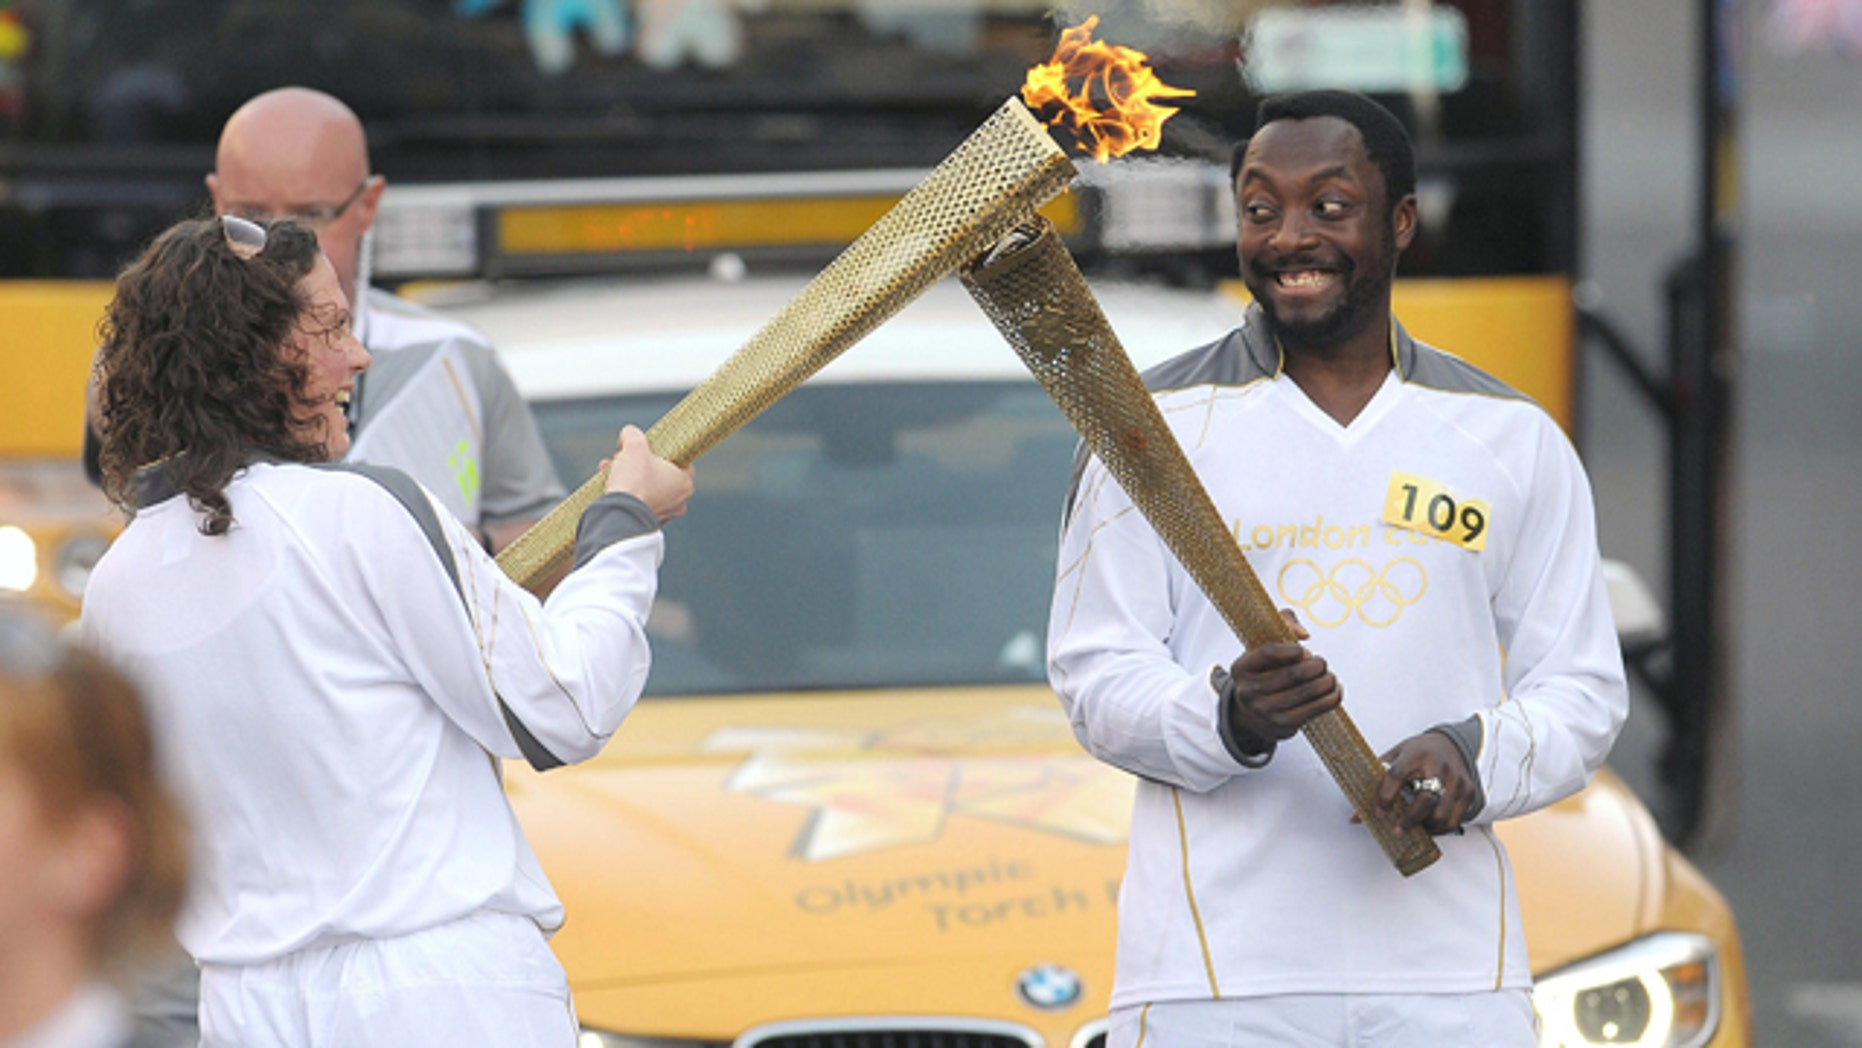 May 21, 2012: Will.i.am of the Black Eyed Peas passes the Olympic Flame to torchbearer Emma Fowler in Taunton, southwest England.